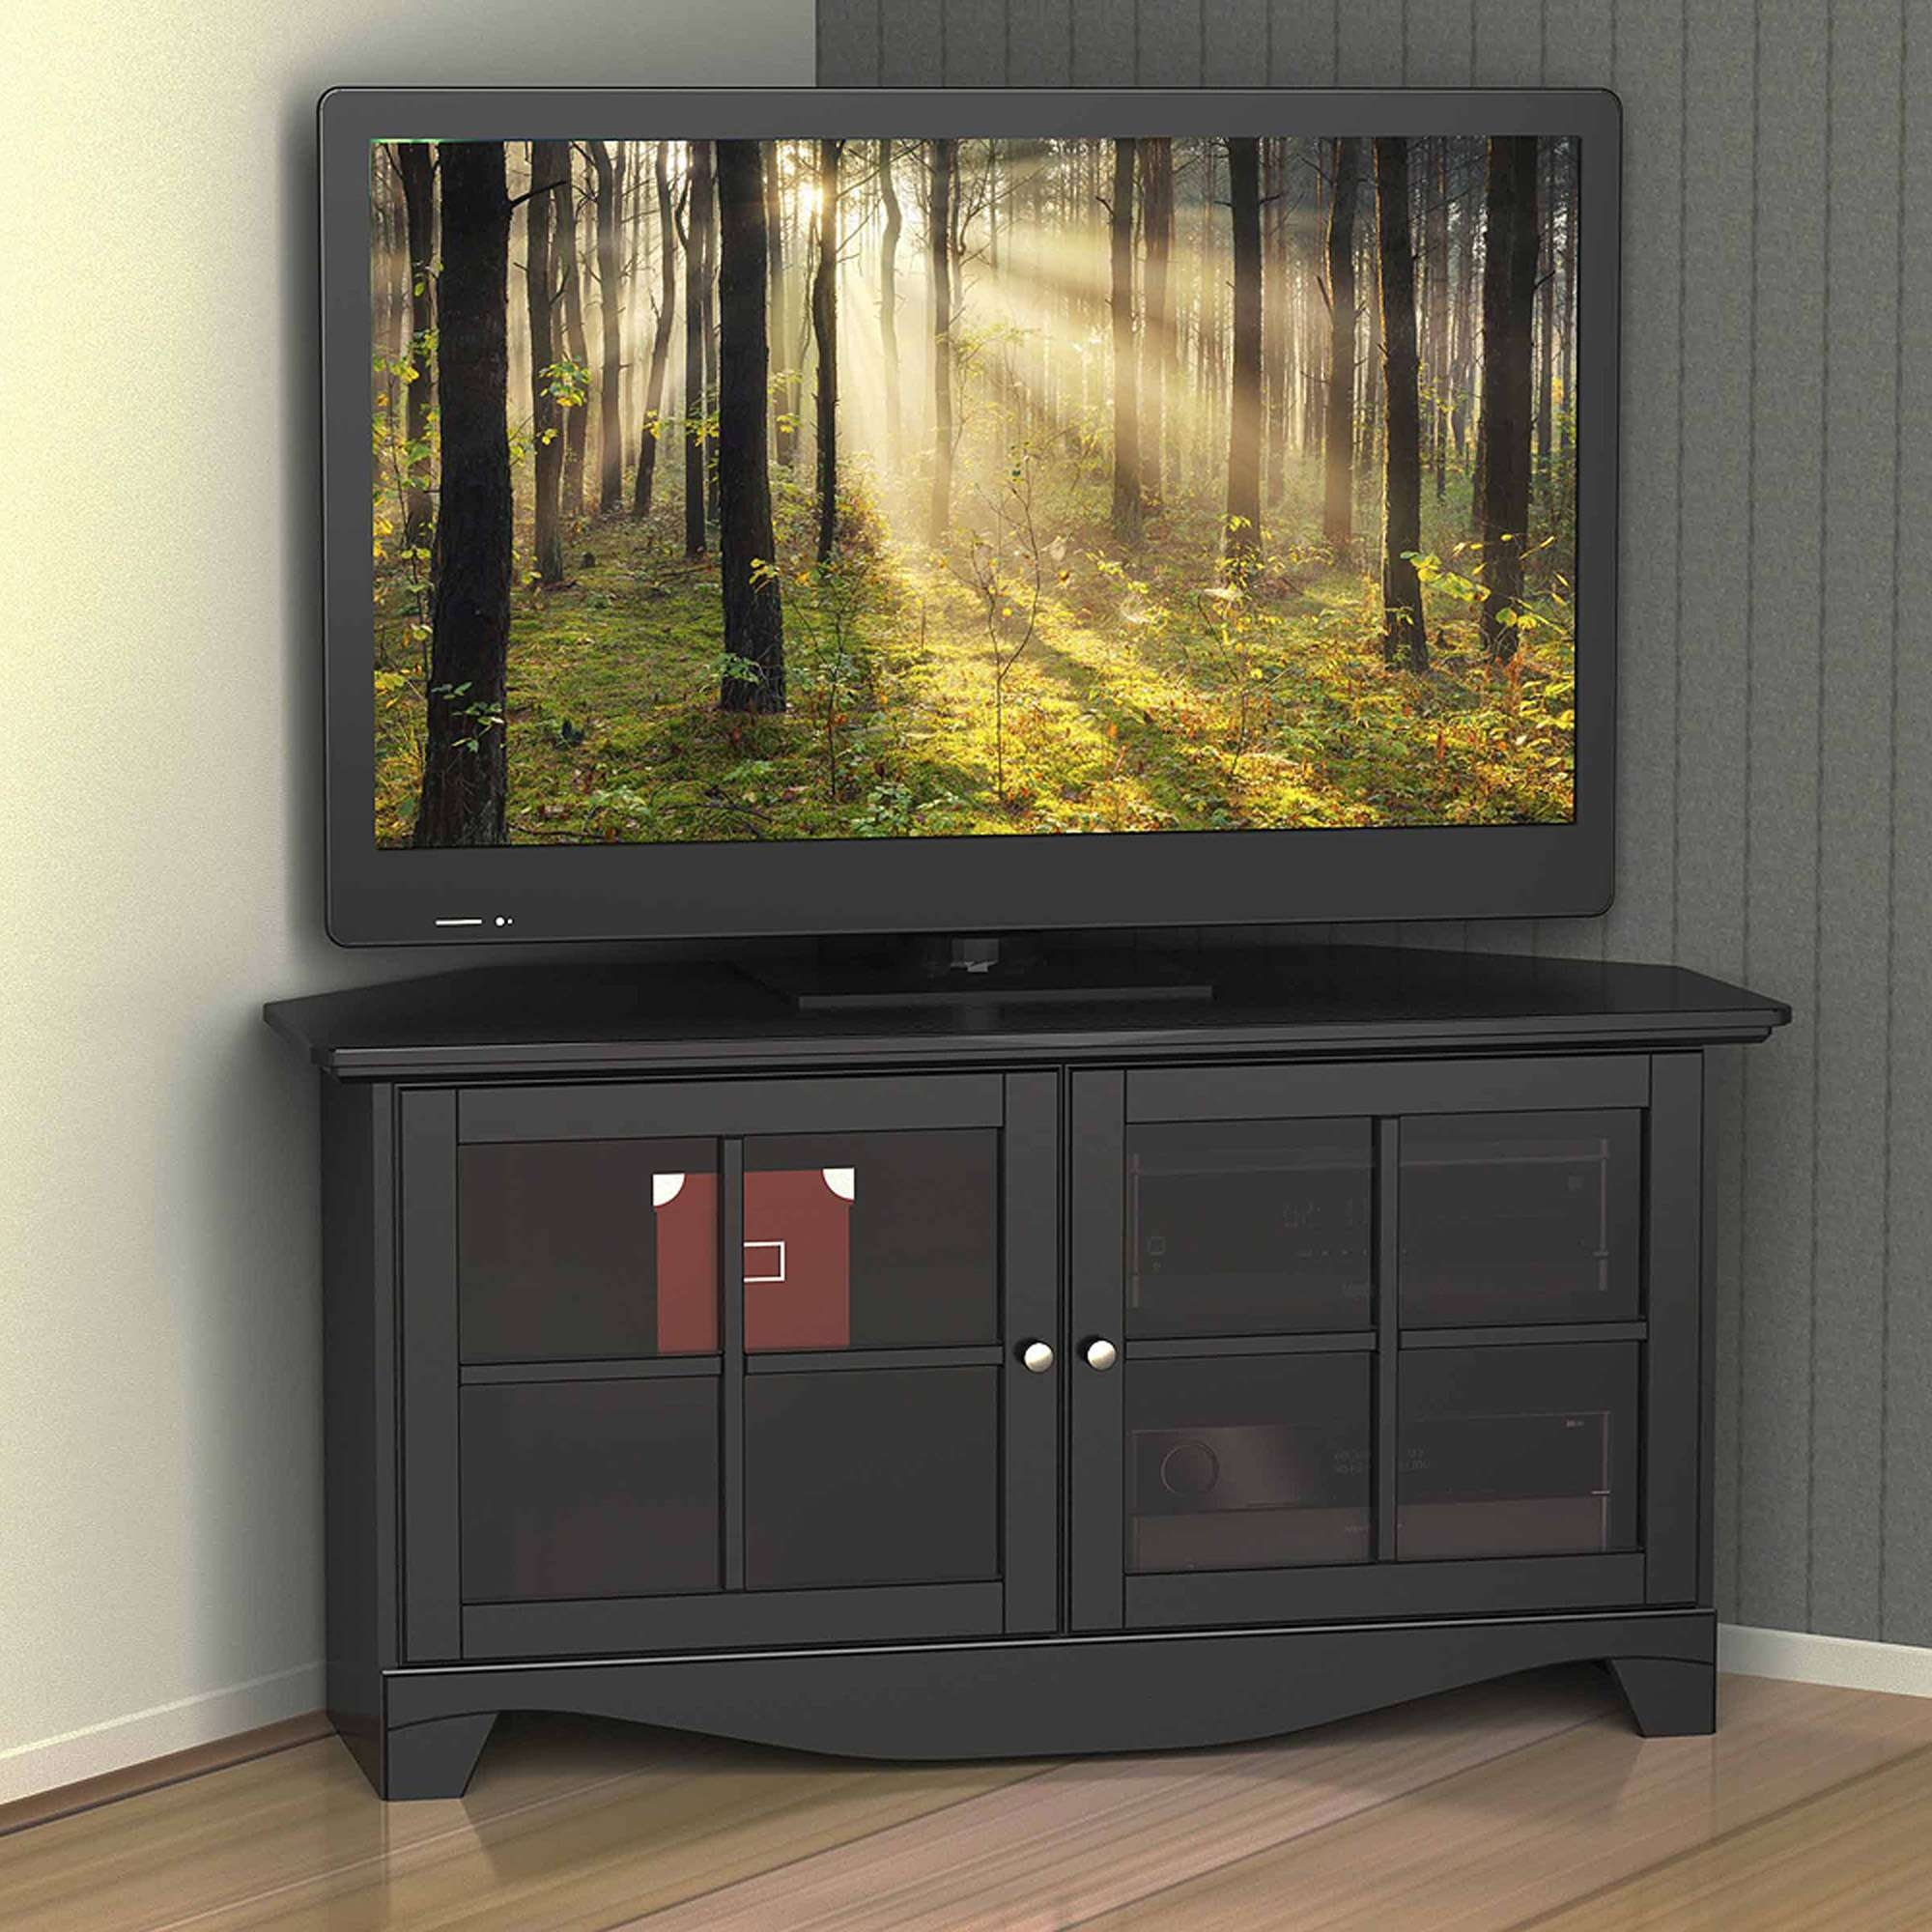 Nexera Pinnacle Black 2 Door Corner Tv Stand For Tvs Up To 49 Throughout Corner Tv Cabinets With Hutch (View 8 of 20)